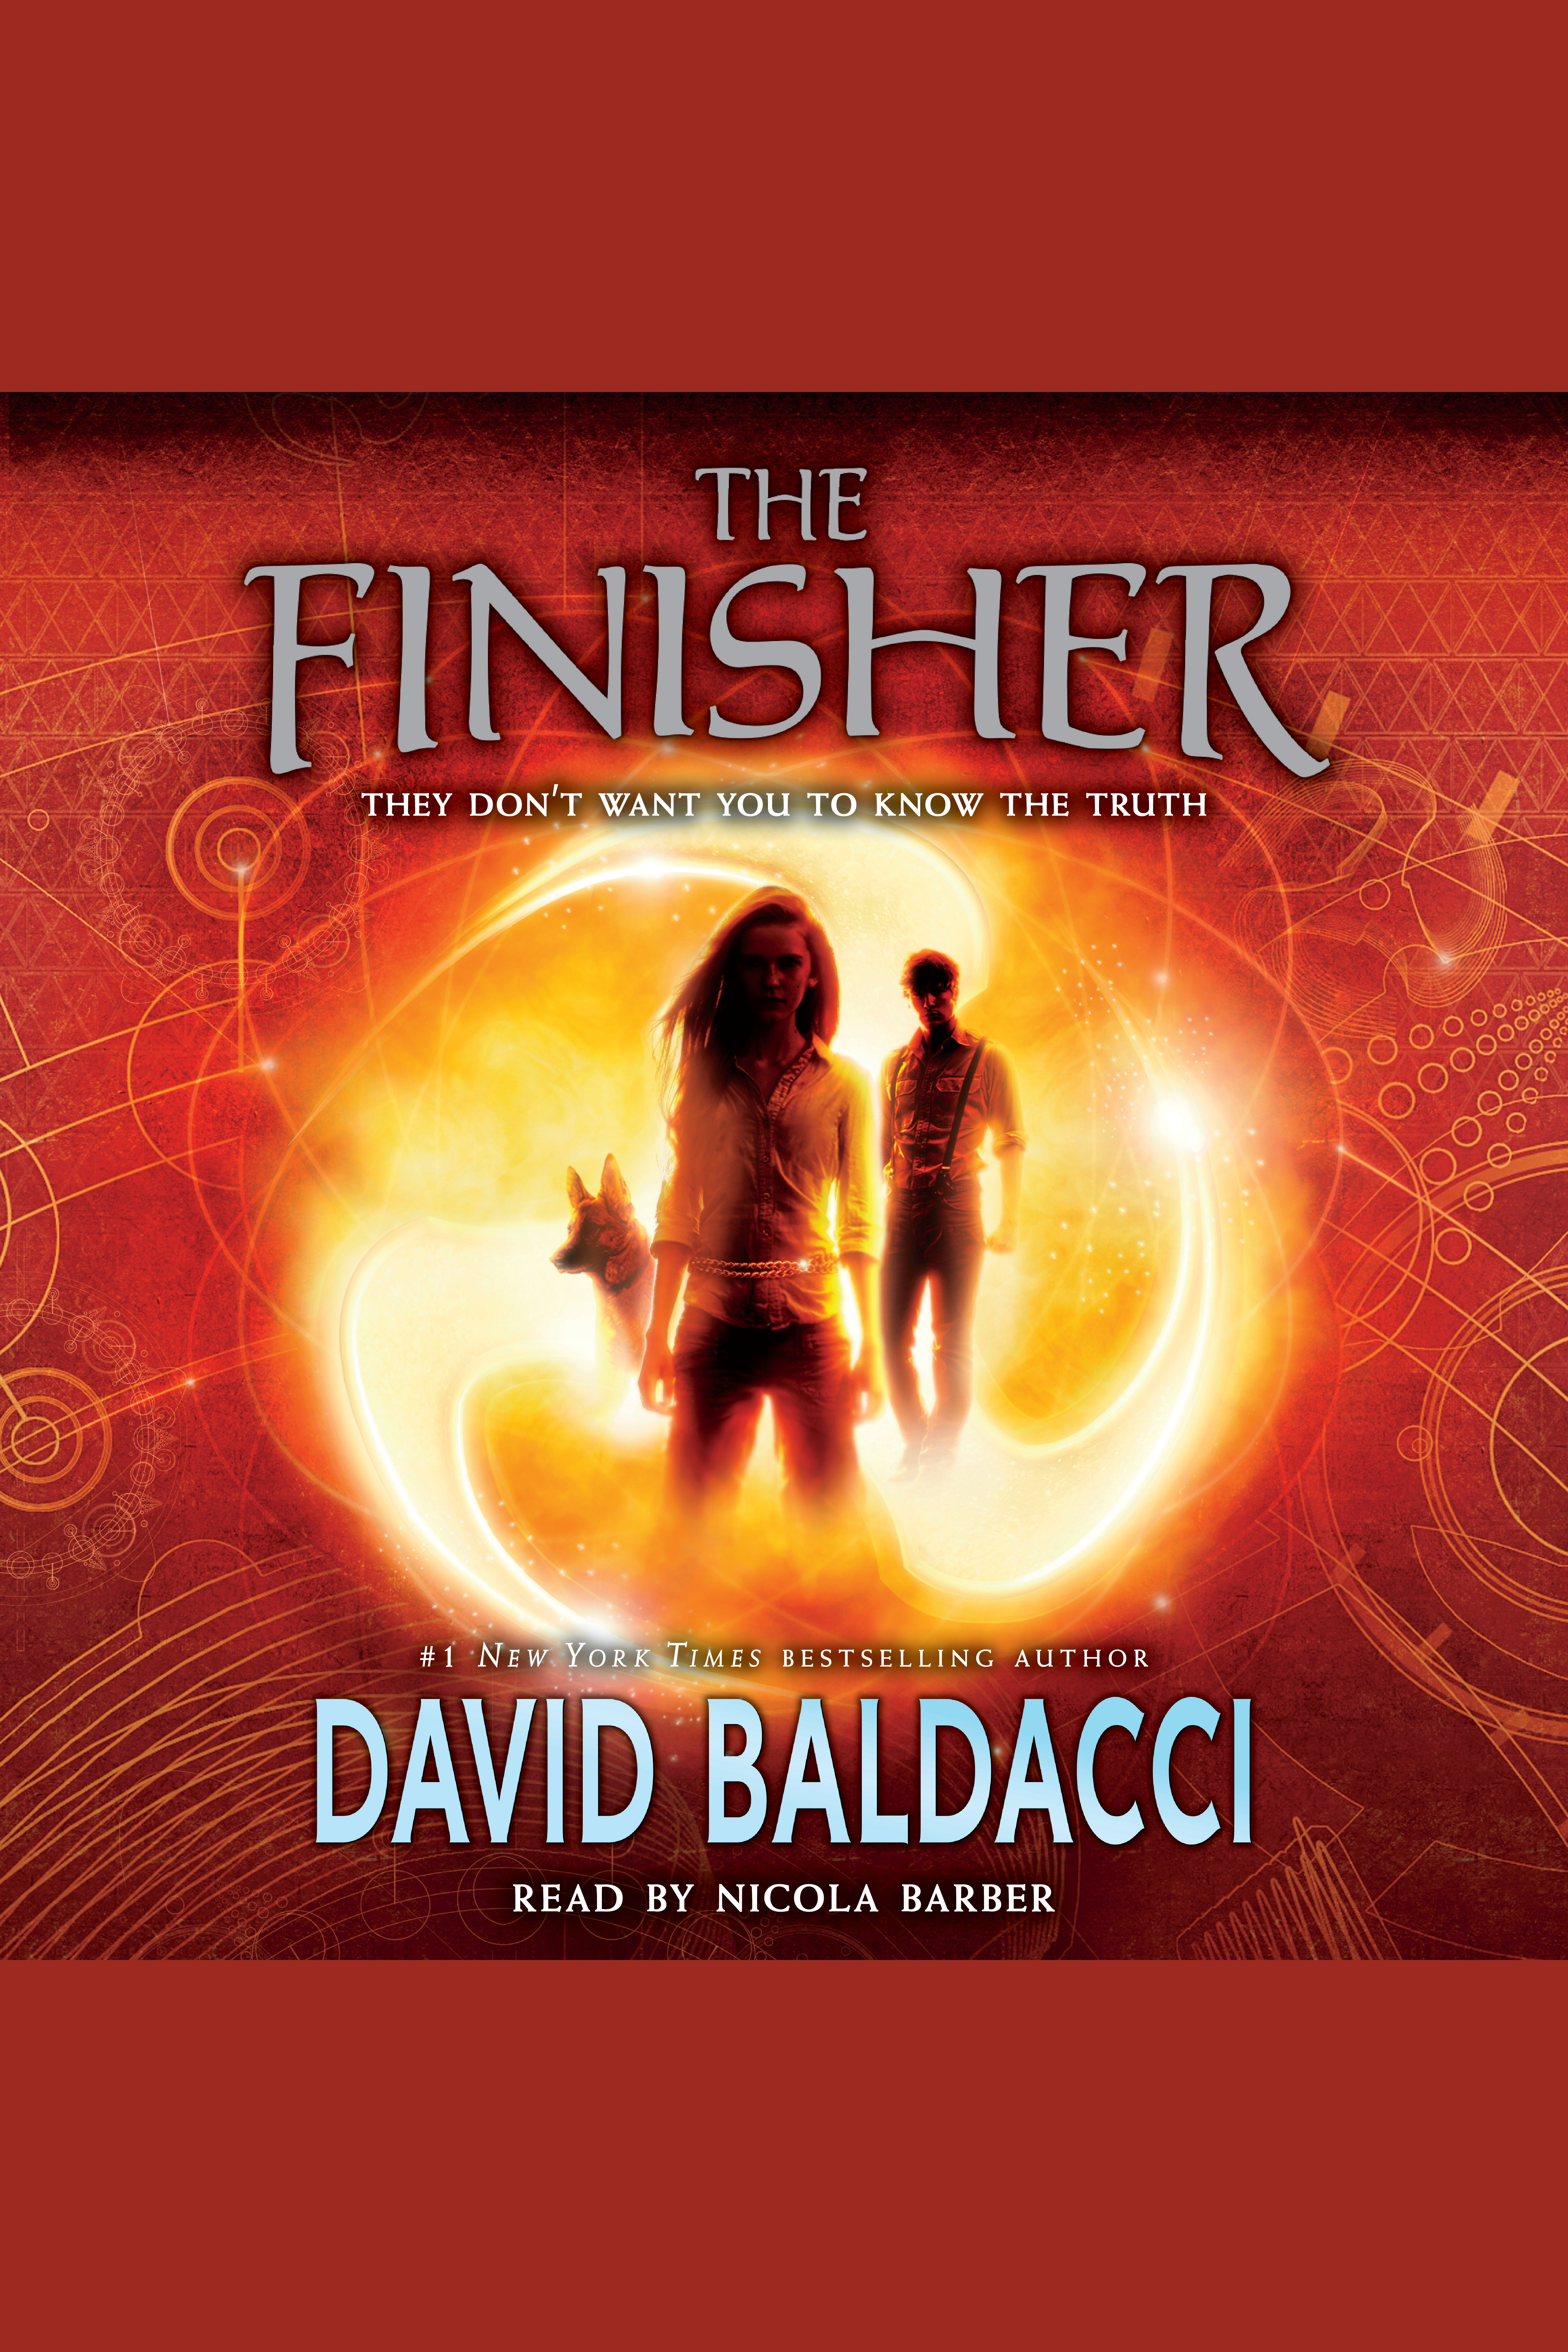 The finisher cover image